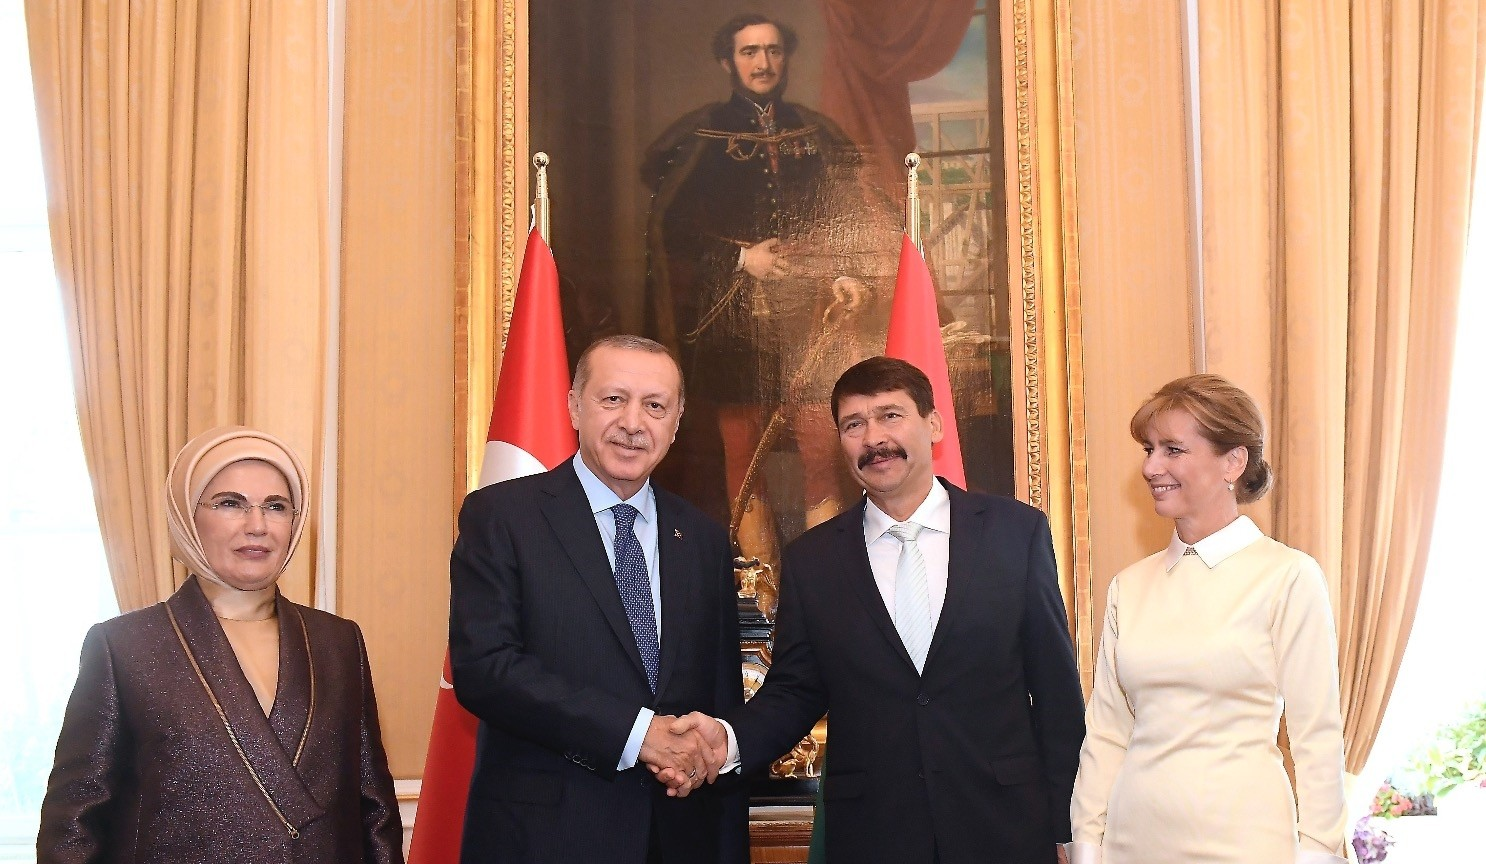 President Recep Tayyip Erdou011fan shakes hands with Hungarian President Janos Ader as their wives Emine Erdou011fan (L) and Anita Herczegh (R) look on during their meeting at the presidential Alexander Palace in Budapest, yesterday.